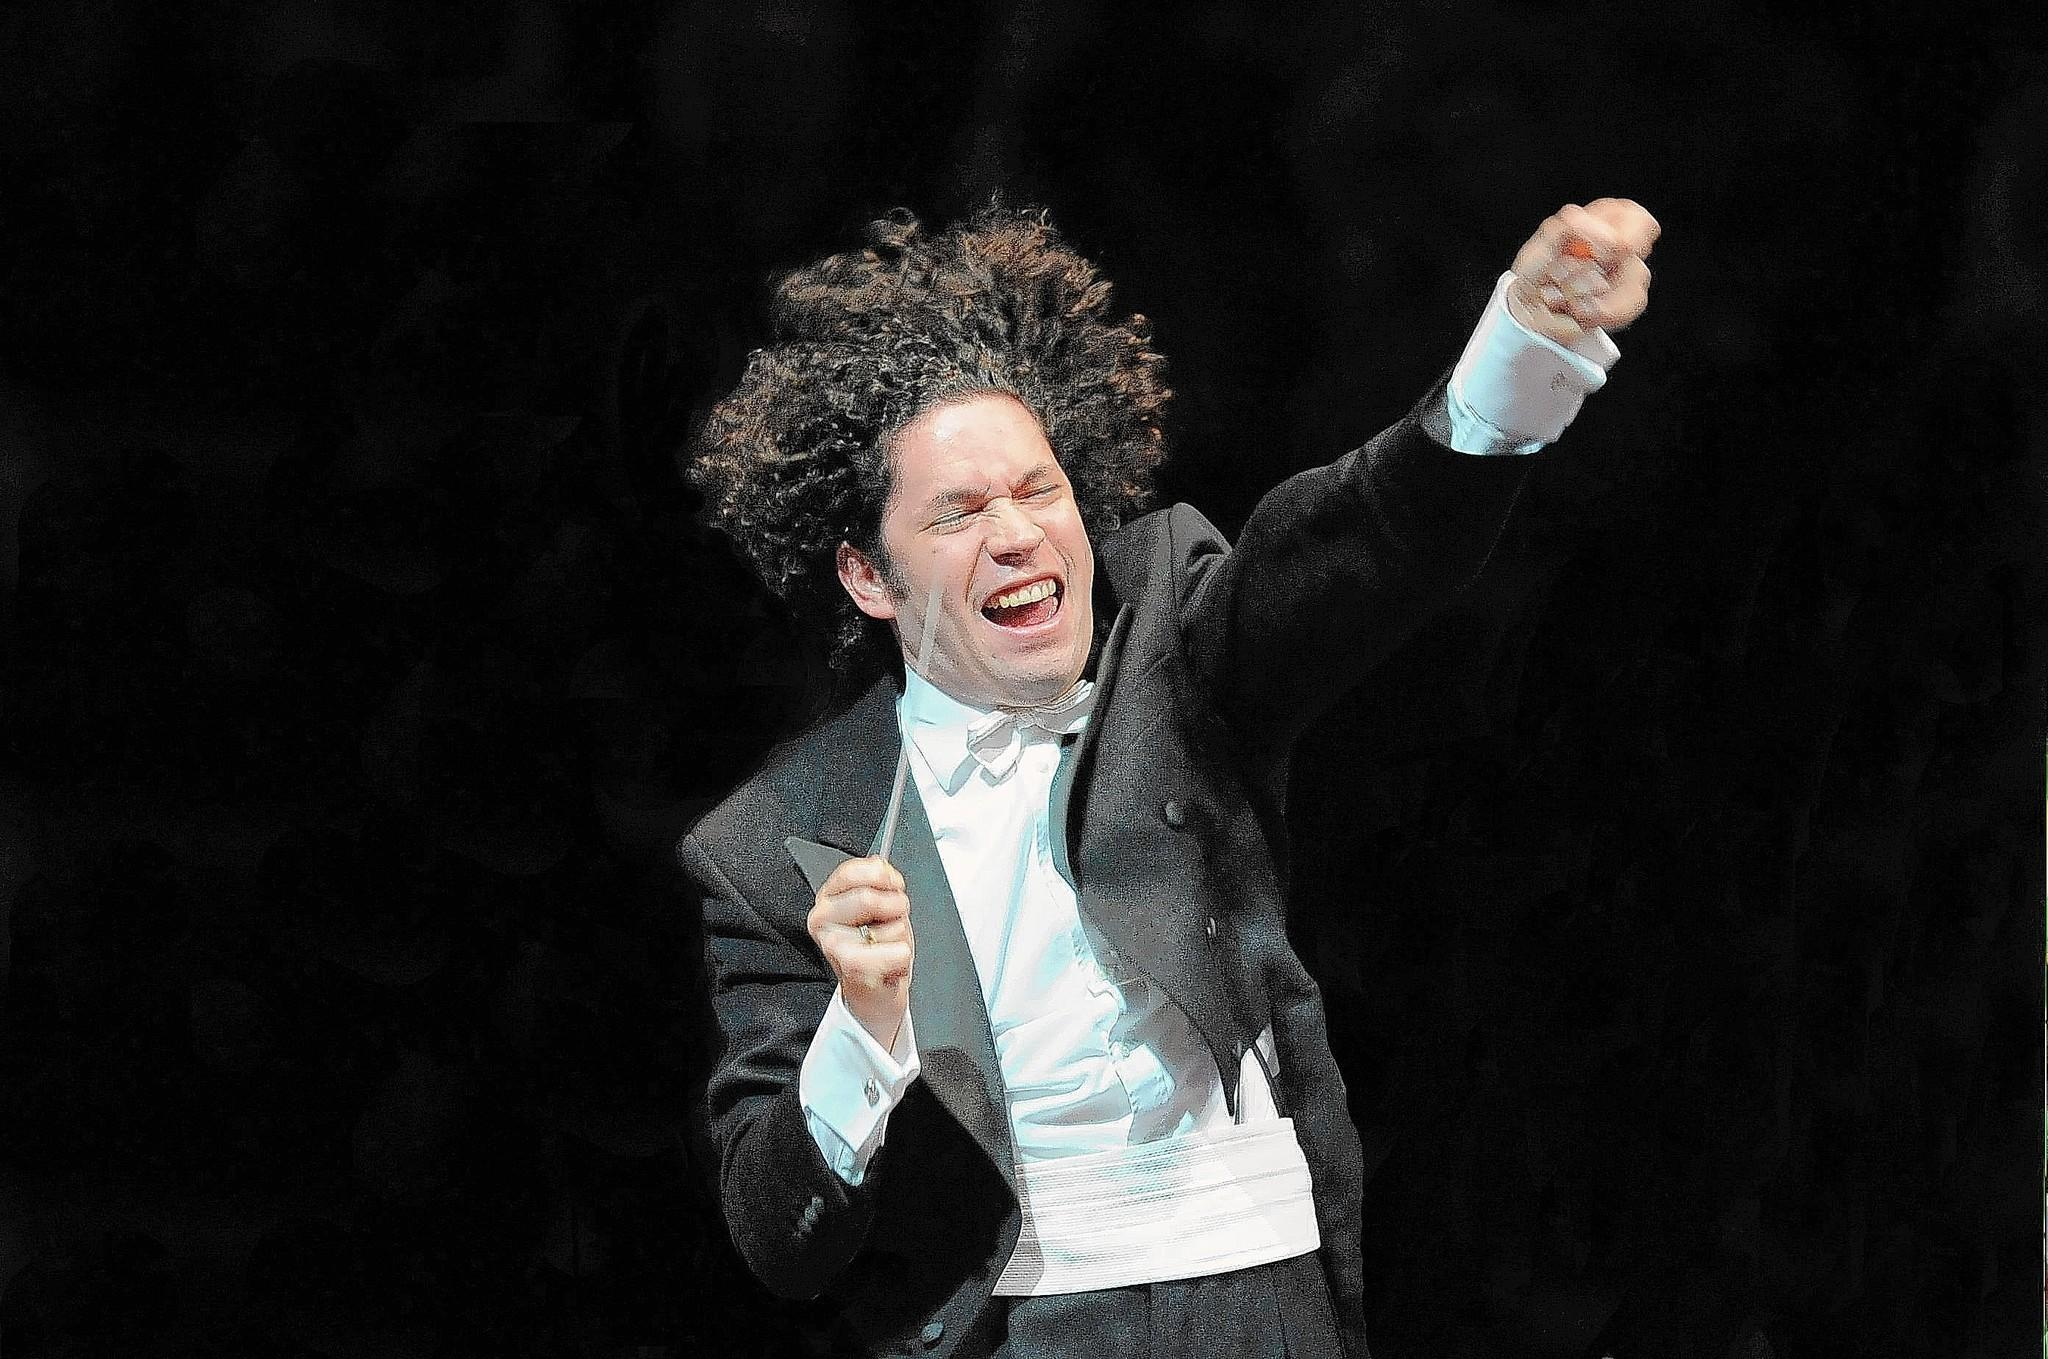 Gustavo Dudamel conducts the Simon Bolivar Symphony Orchestra of Venezuela in London in September 2012.